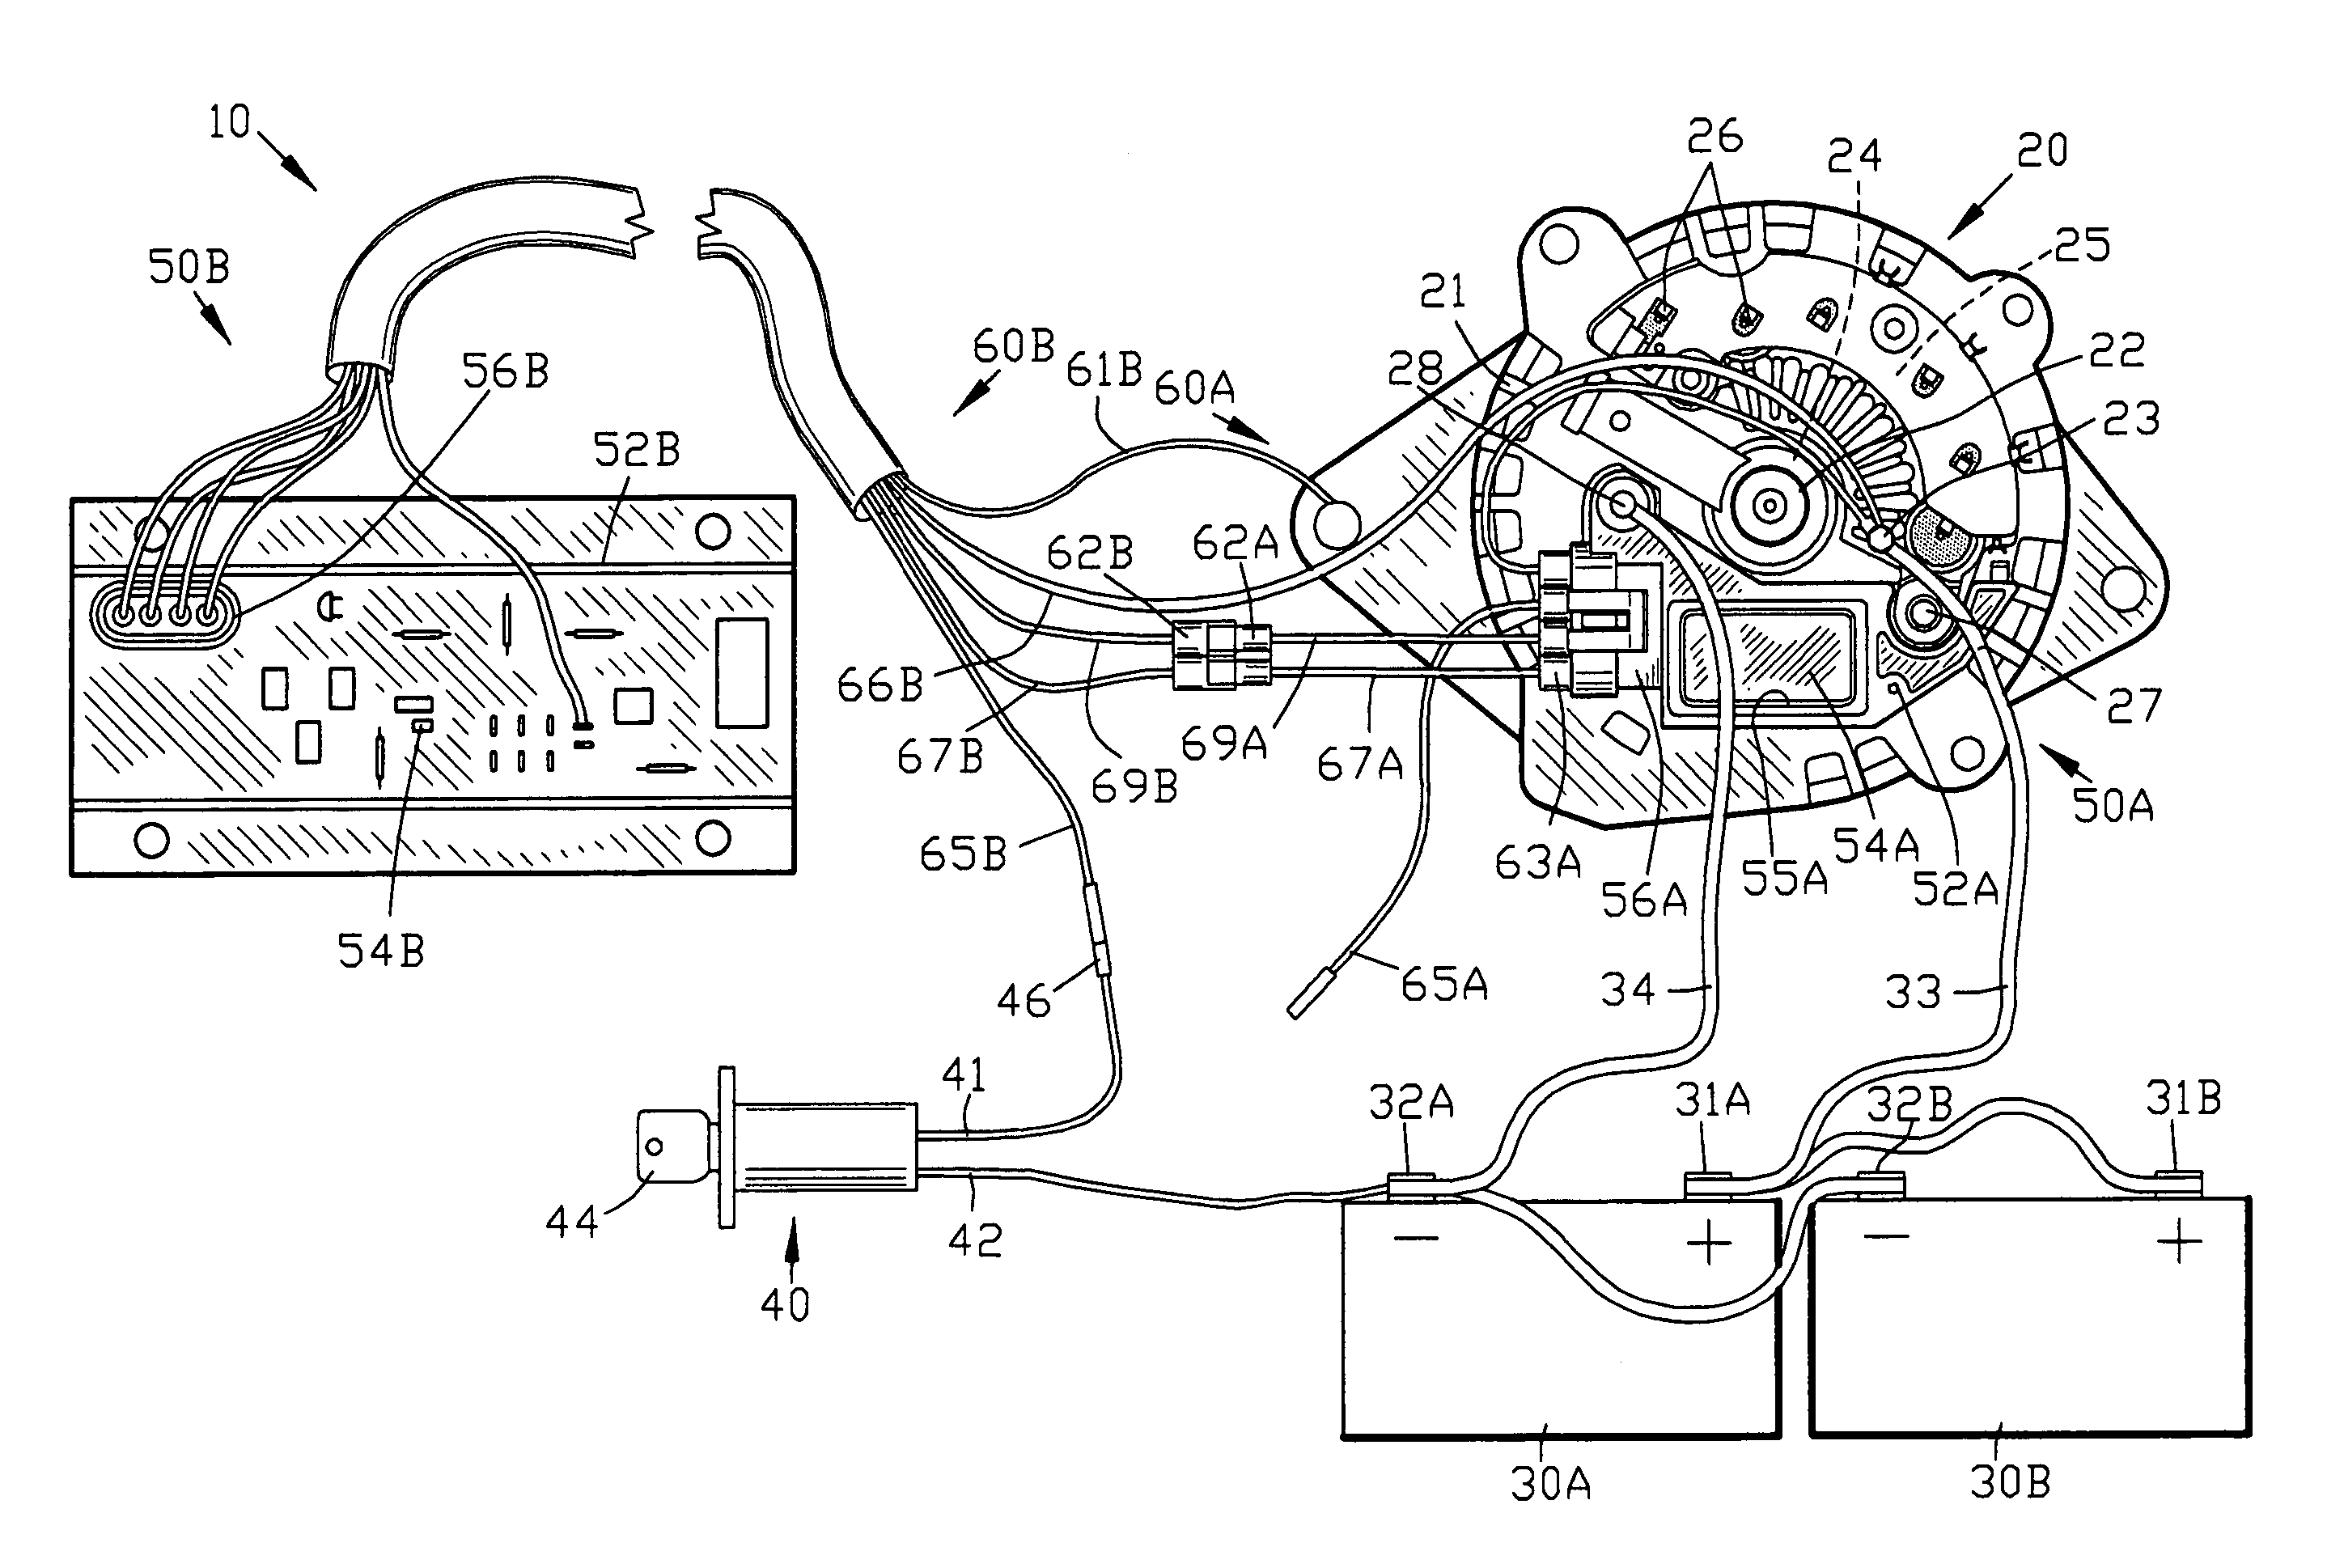 US07245111 20070717 D00000 patent us7245111 regulator system for alternator google patents ford external voltage regulator wiring diagram at alyssarenee.co